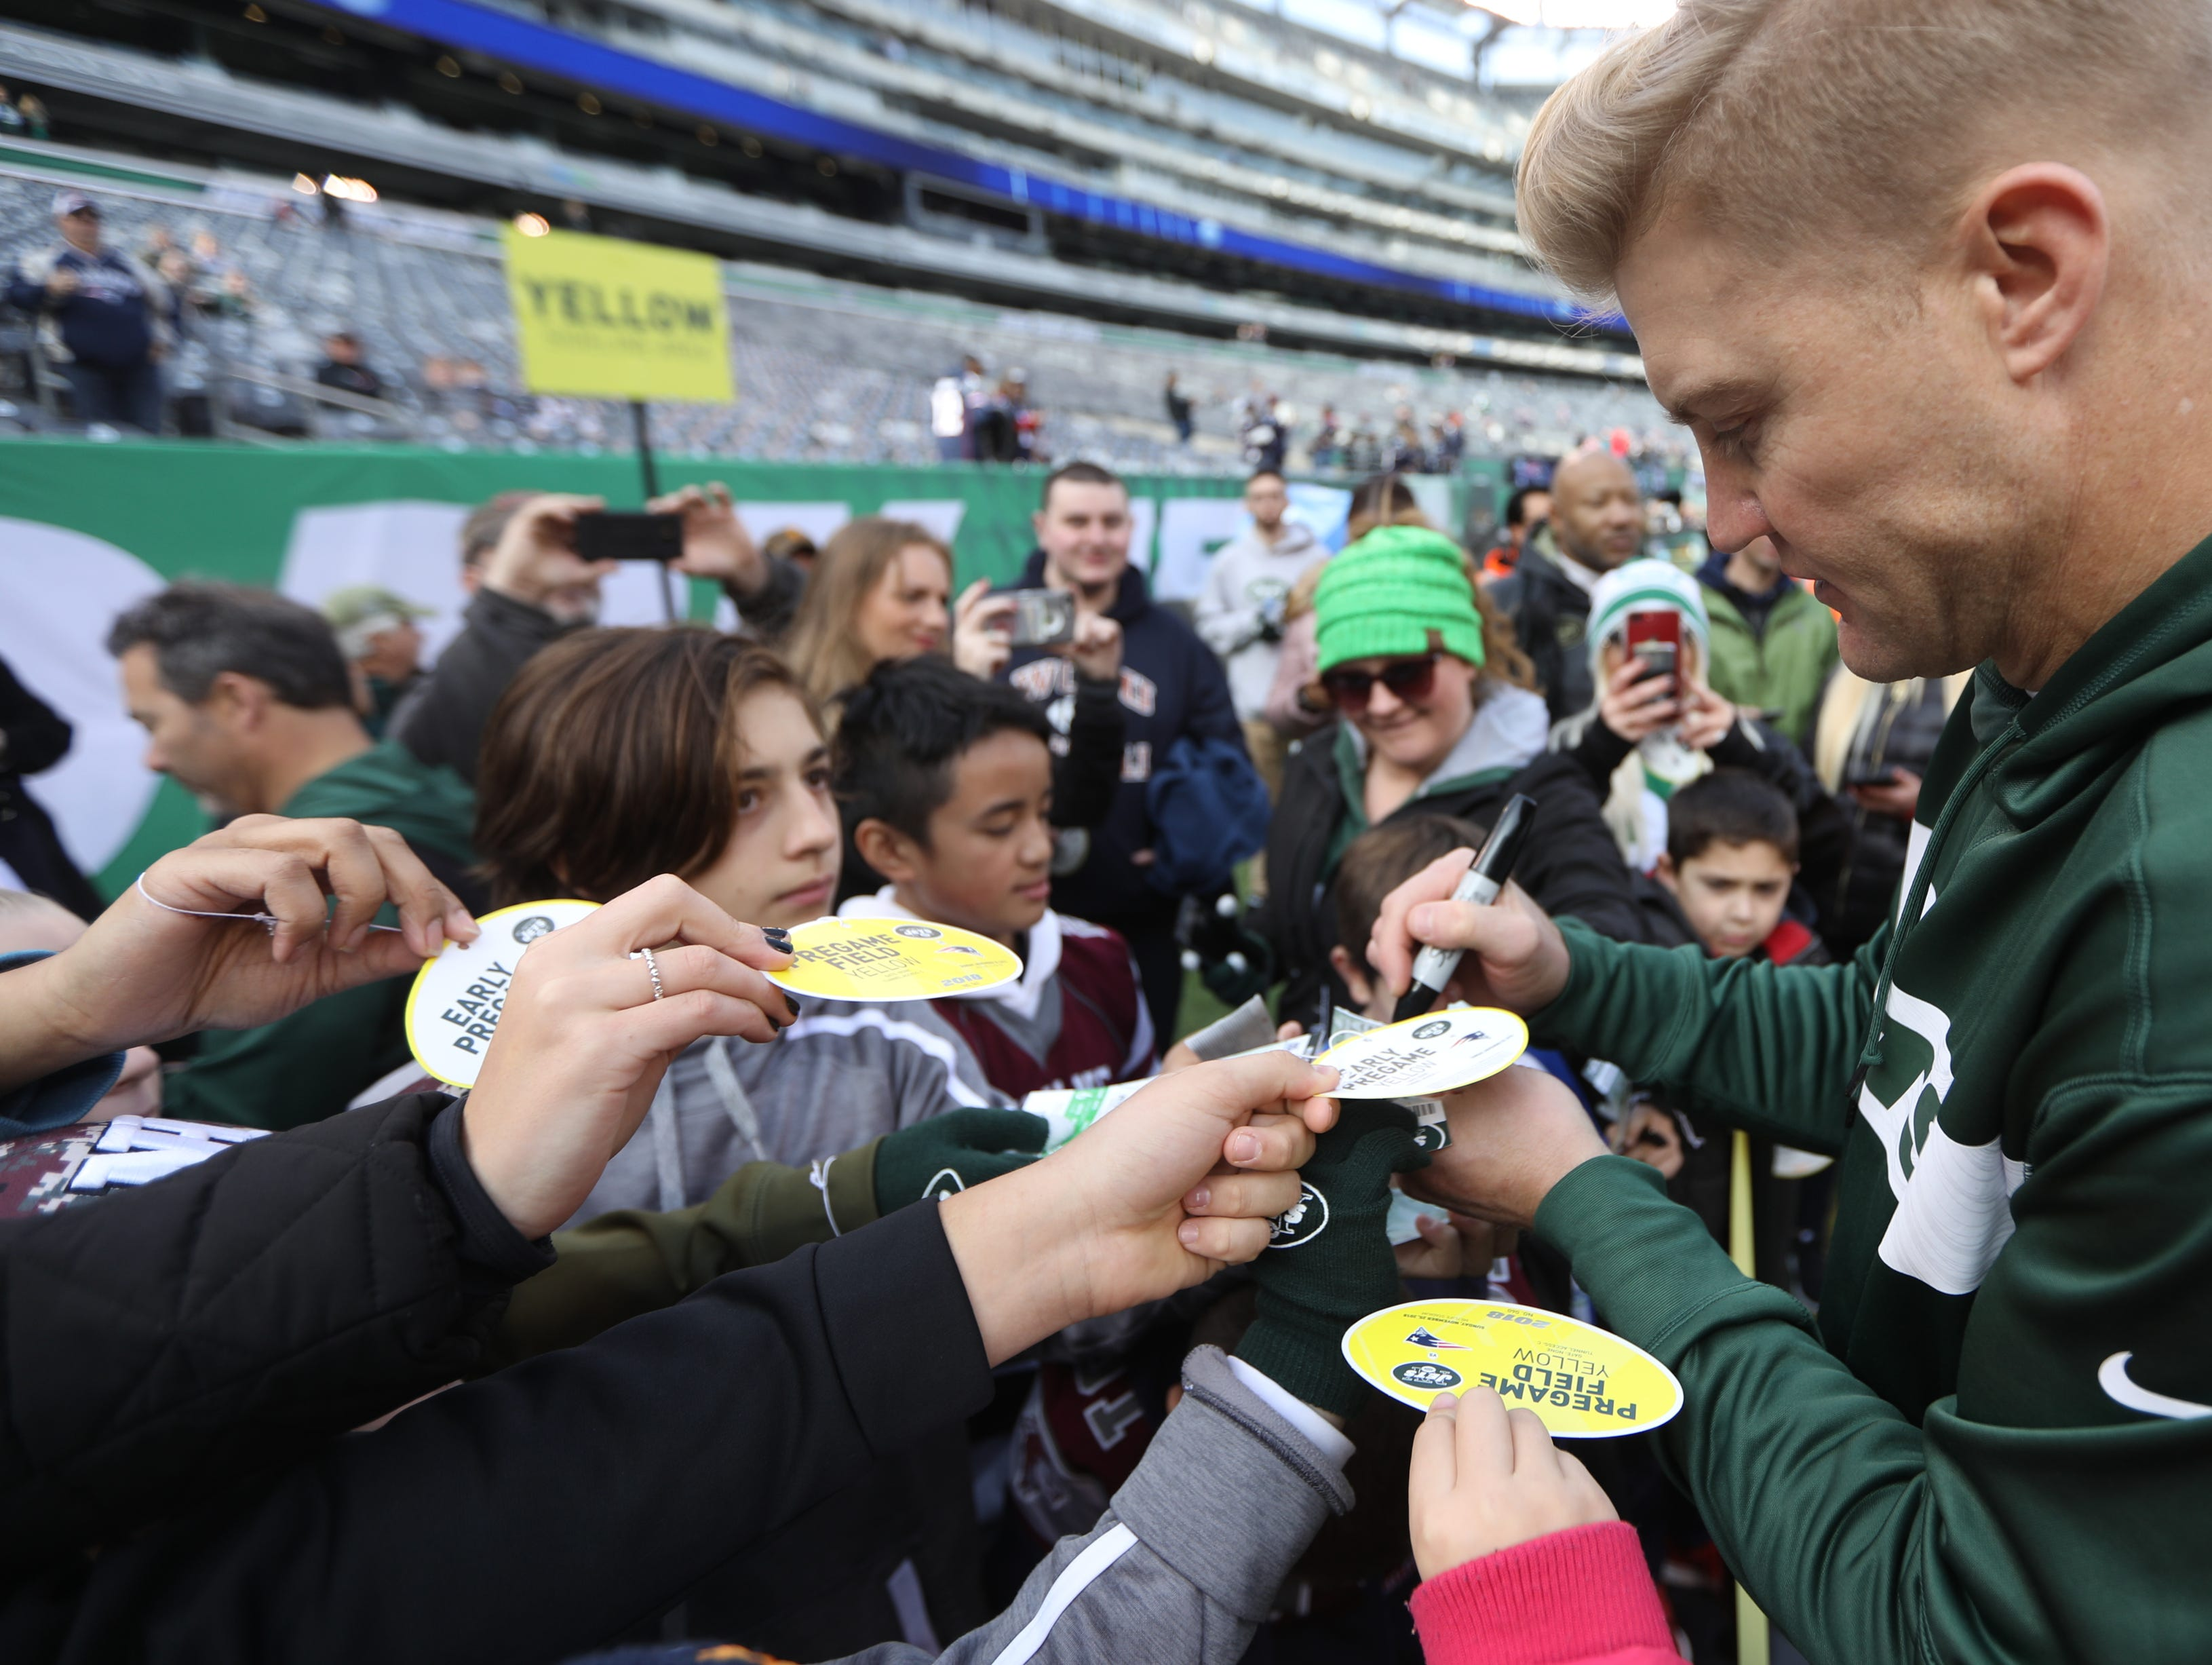 Josh McCown signs autographs for fans before the game. November 25, 2018